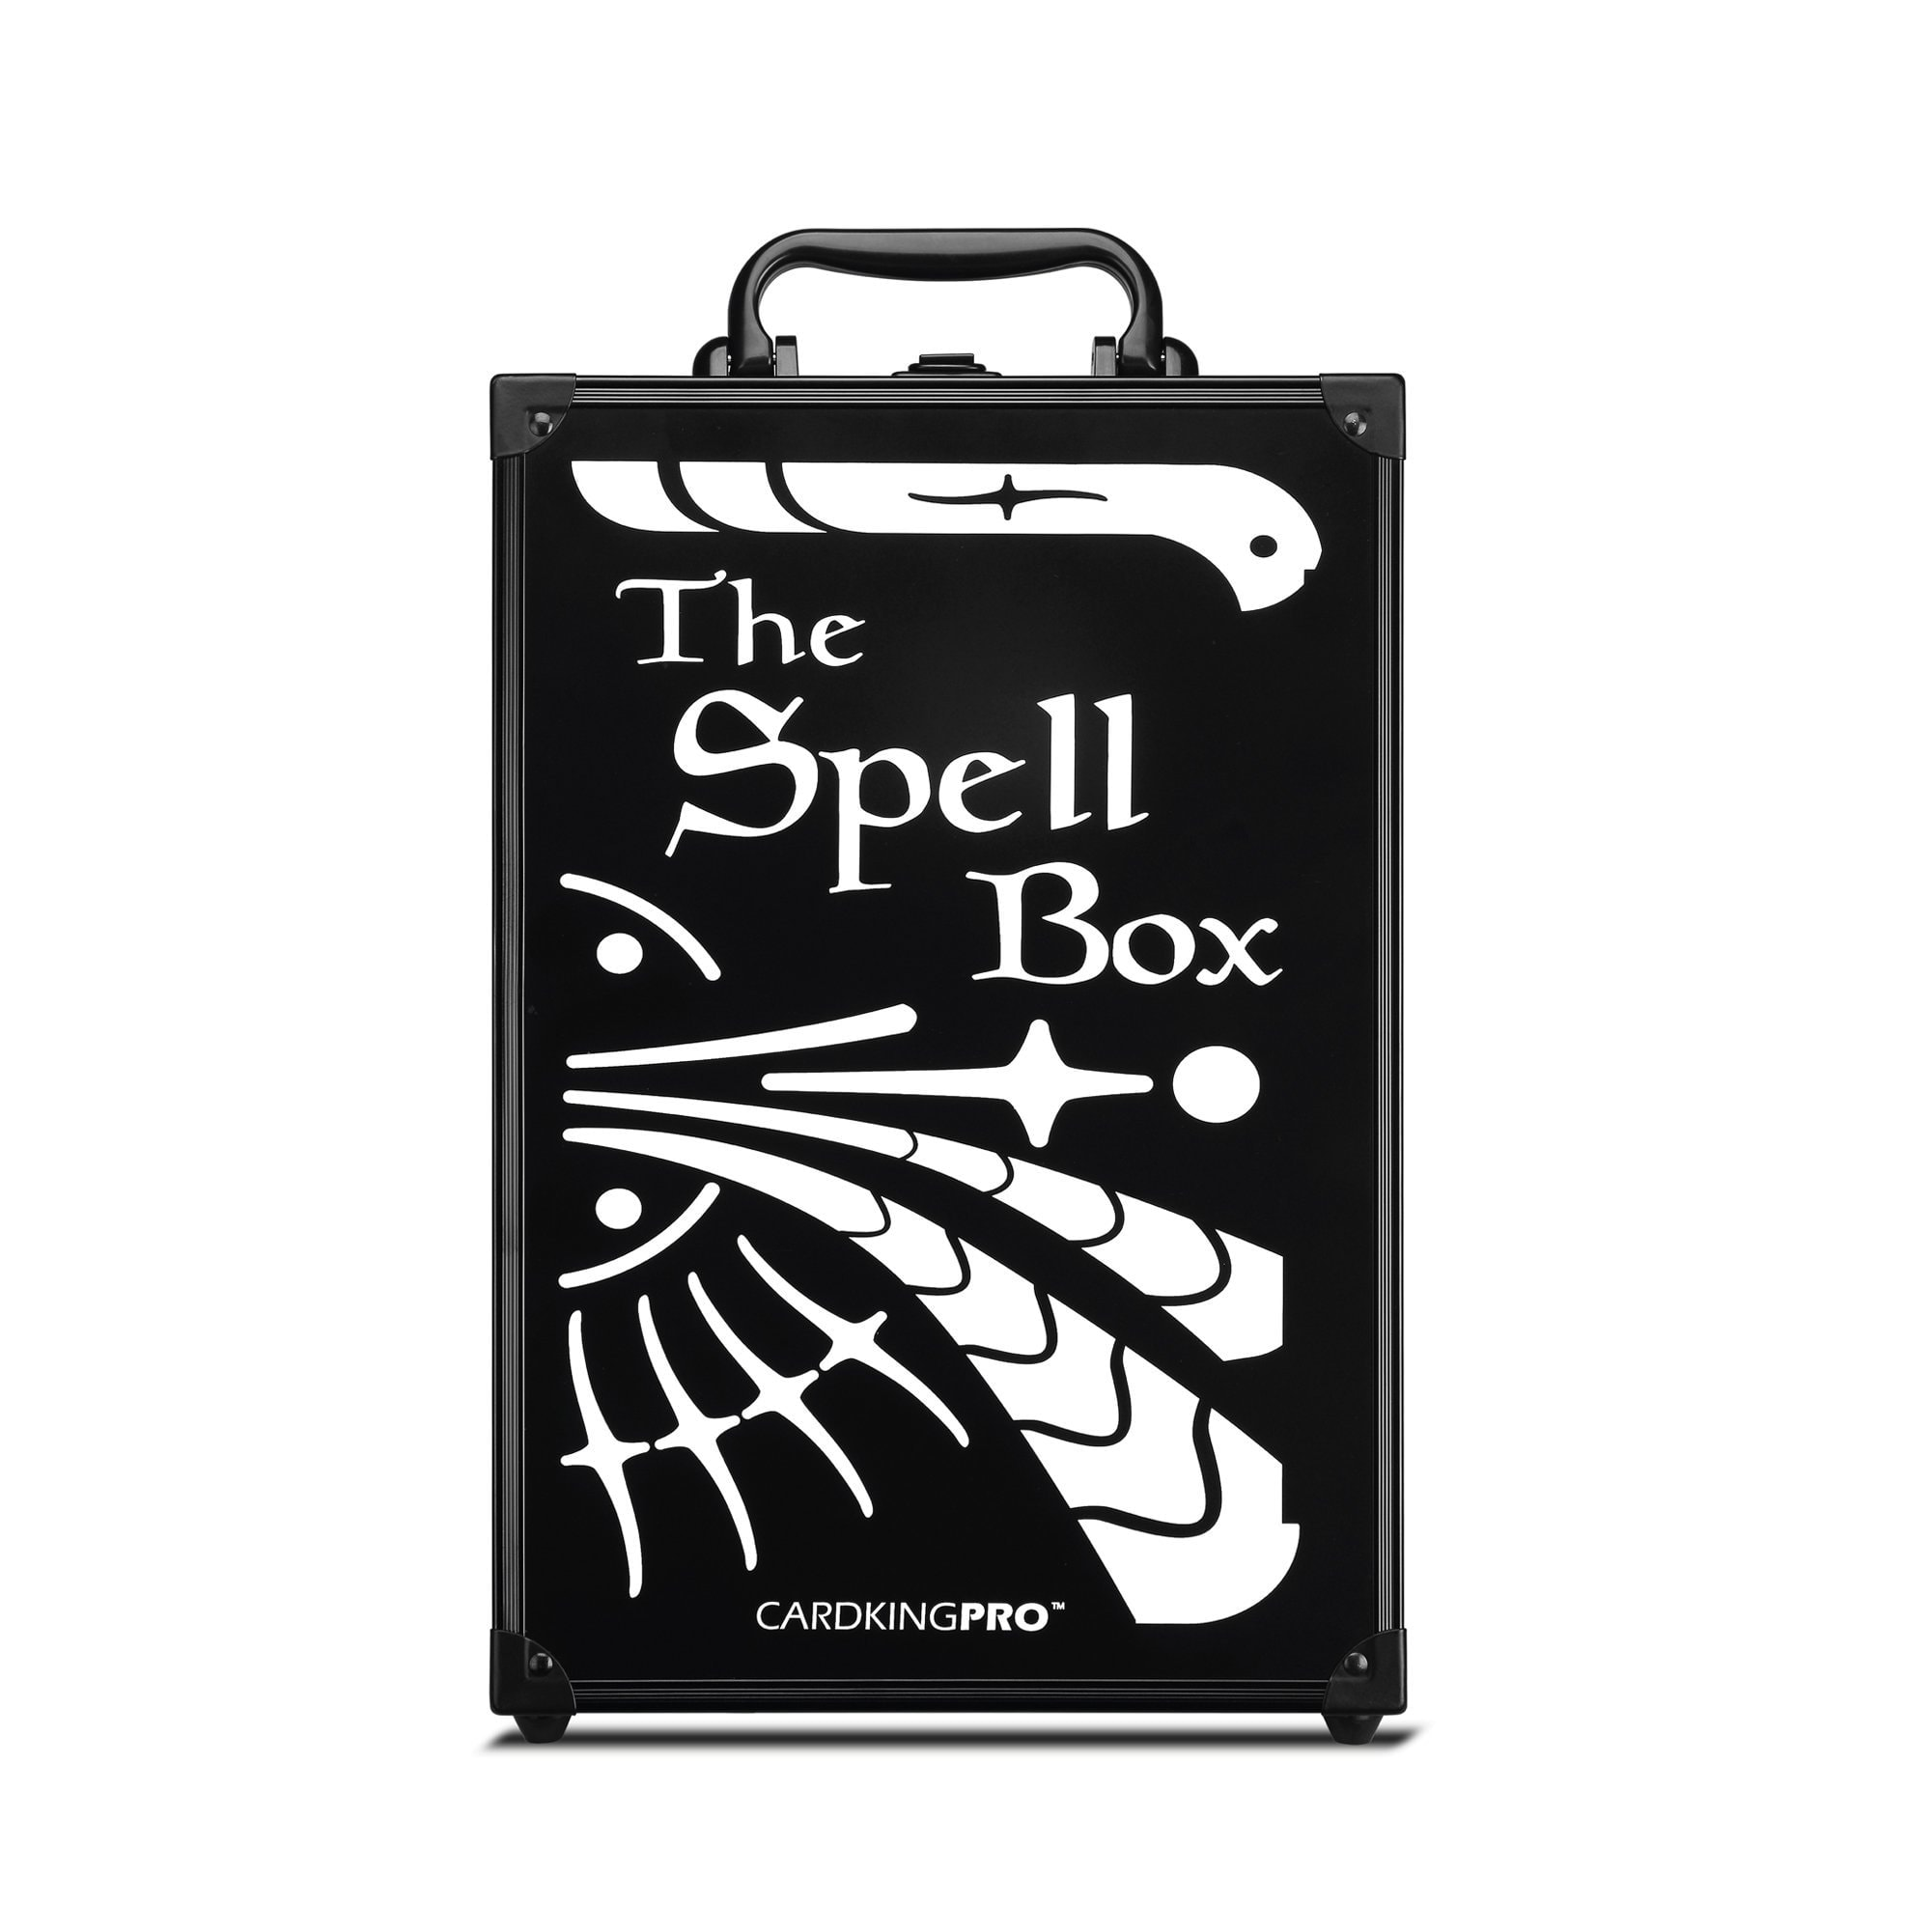 The Spell Box | PRO | Professional Storage Case